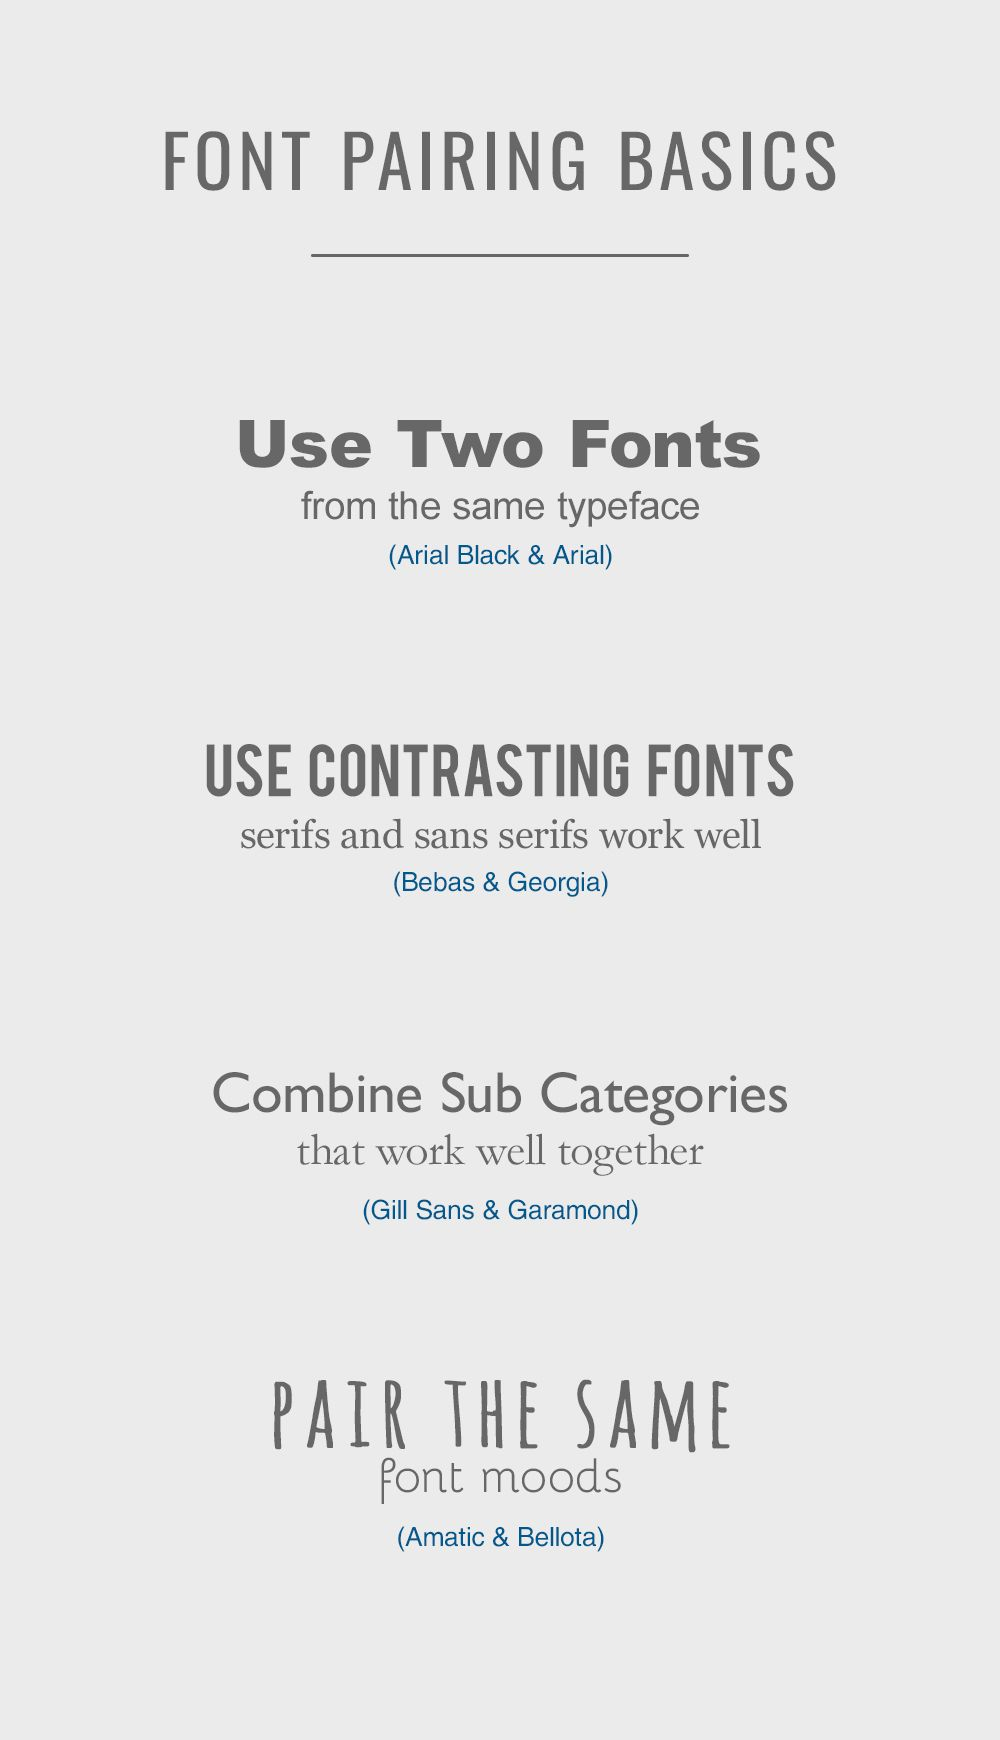 Infographic demonstrating the basics of font pairing.